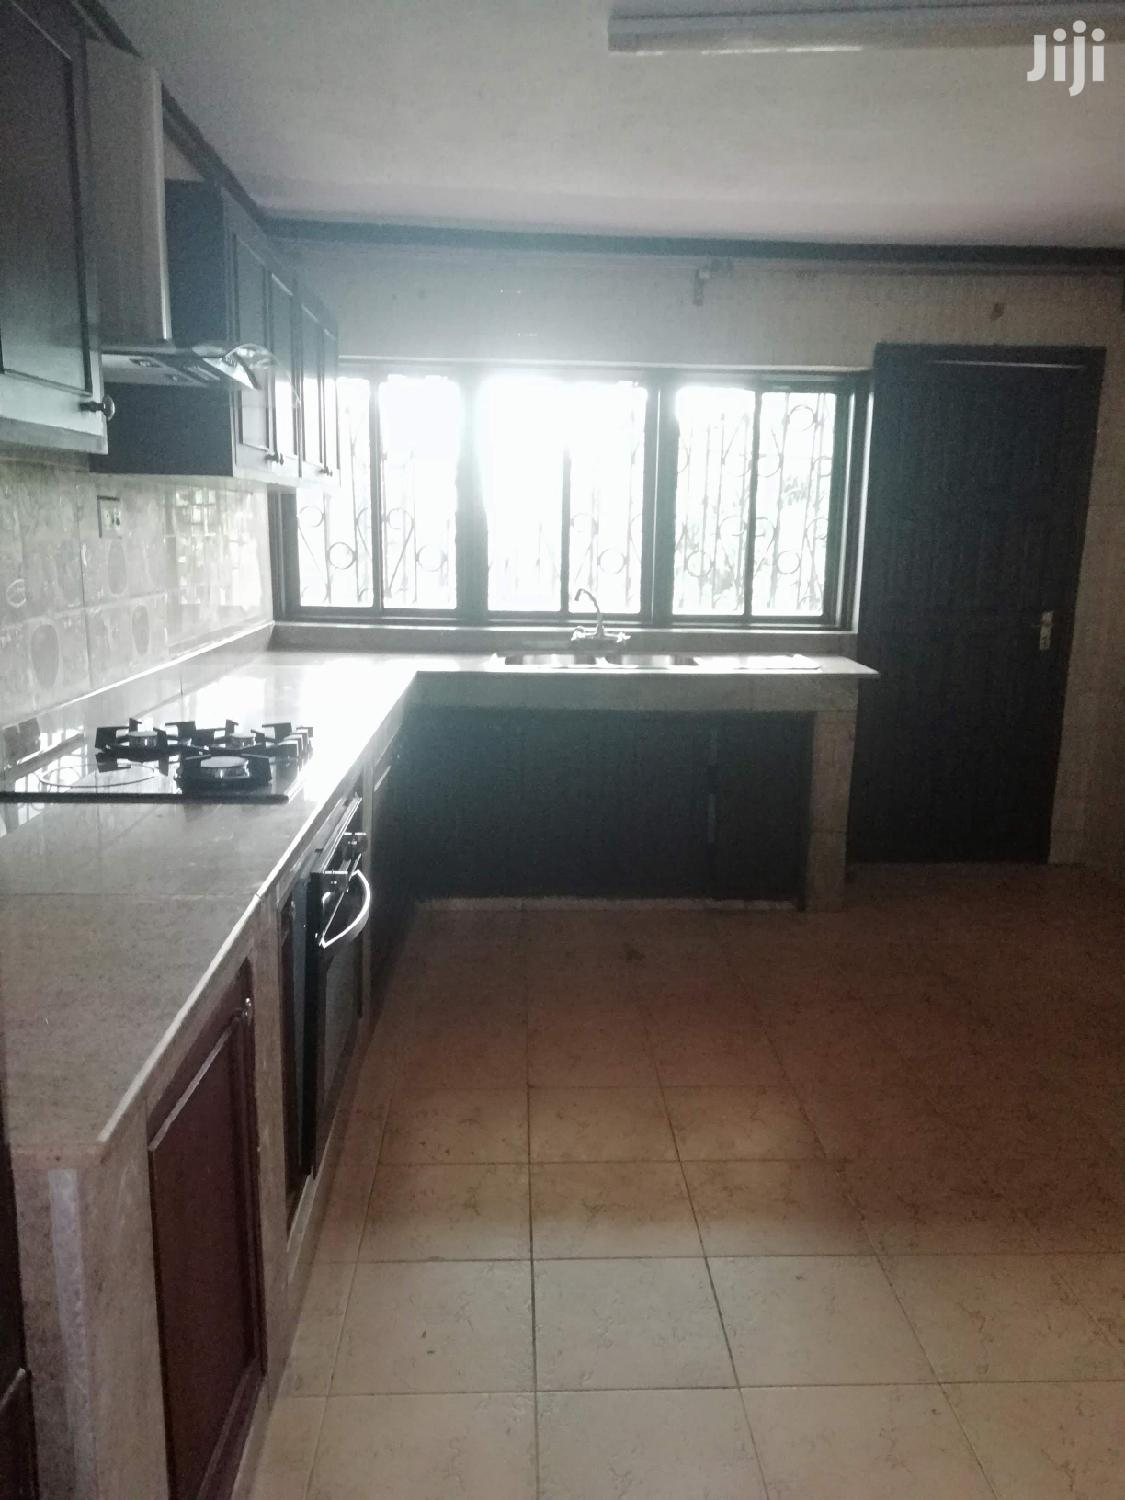 Propery World;1acre Plot With 5brs Bungalow And Very Secure | Land & Plots For Sale for sale in Kileleshwa, Nairobi, Kenya